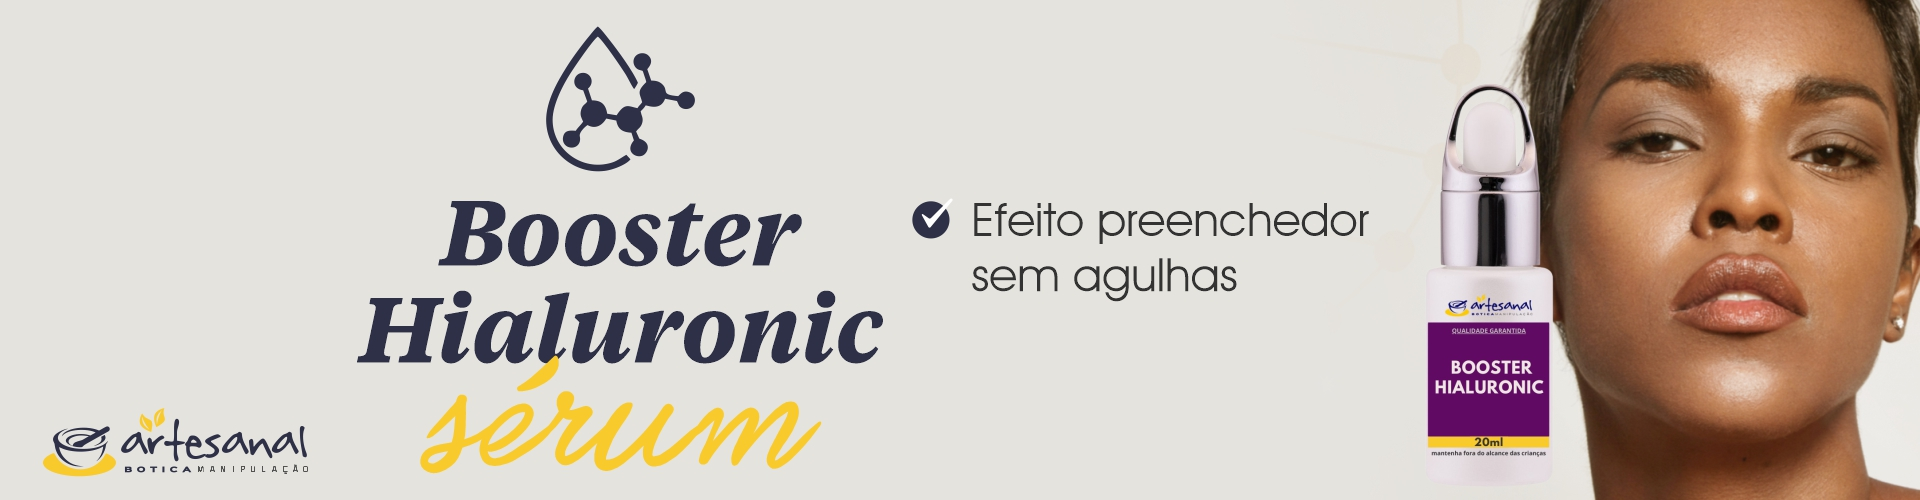 Booster Hialuronic